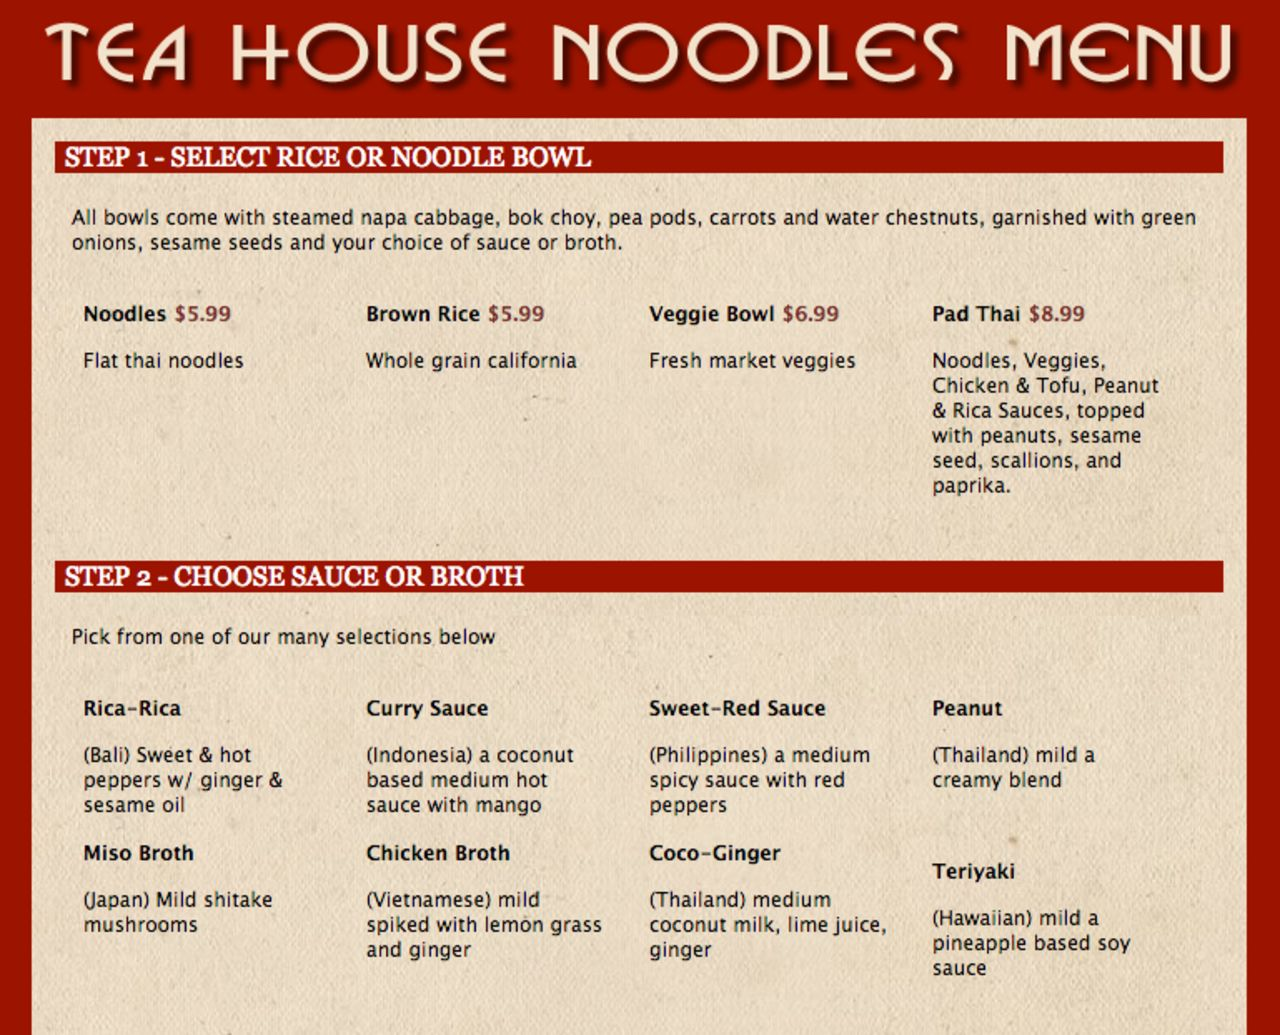 A photo of Tea House Noodles